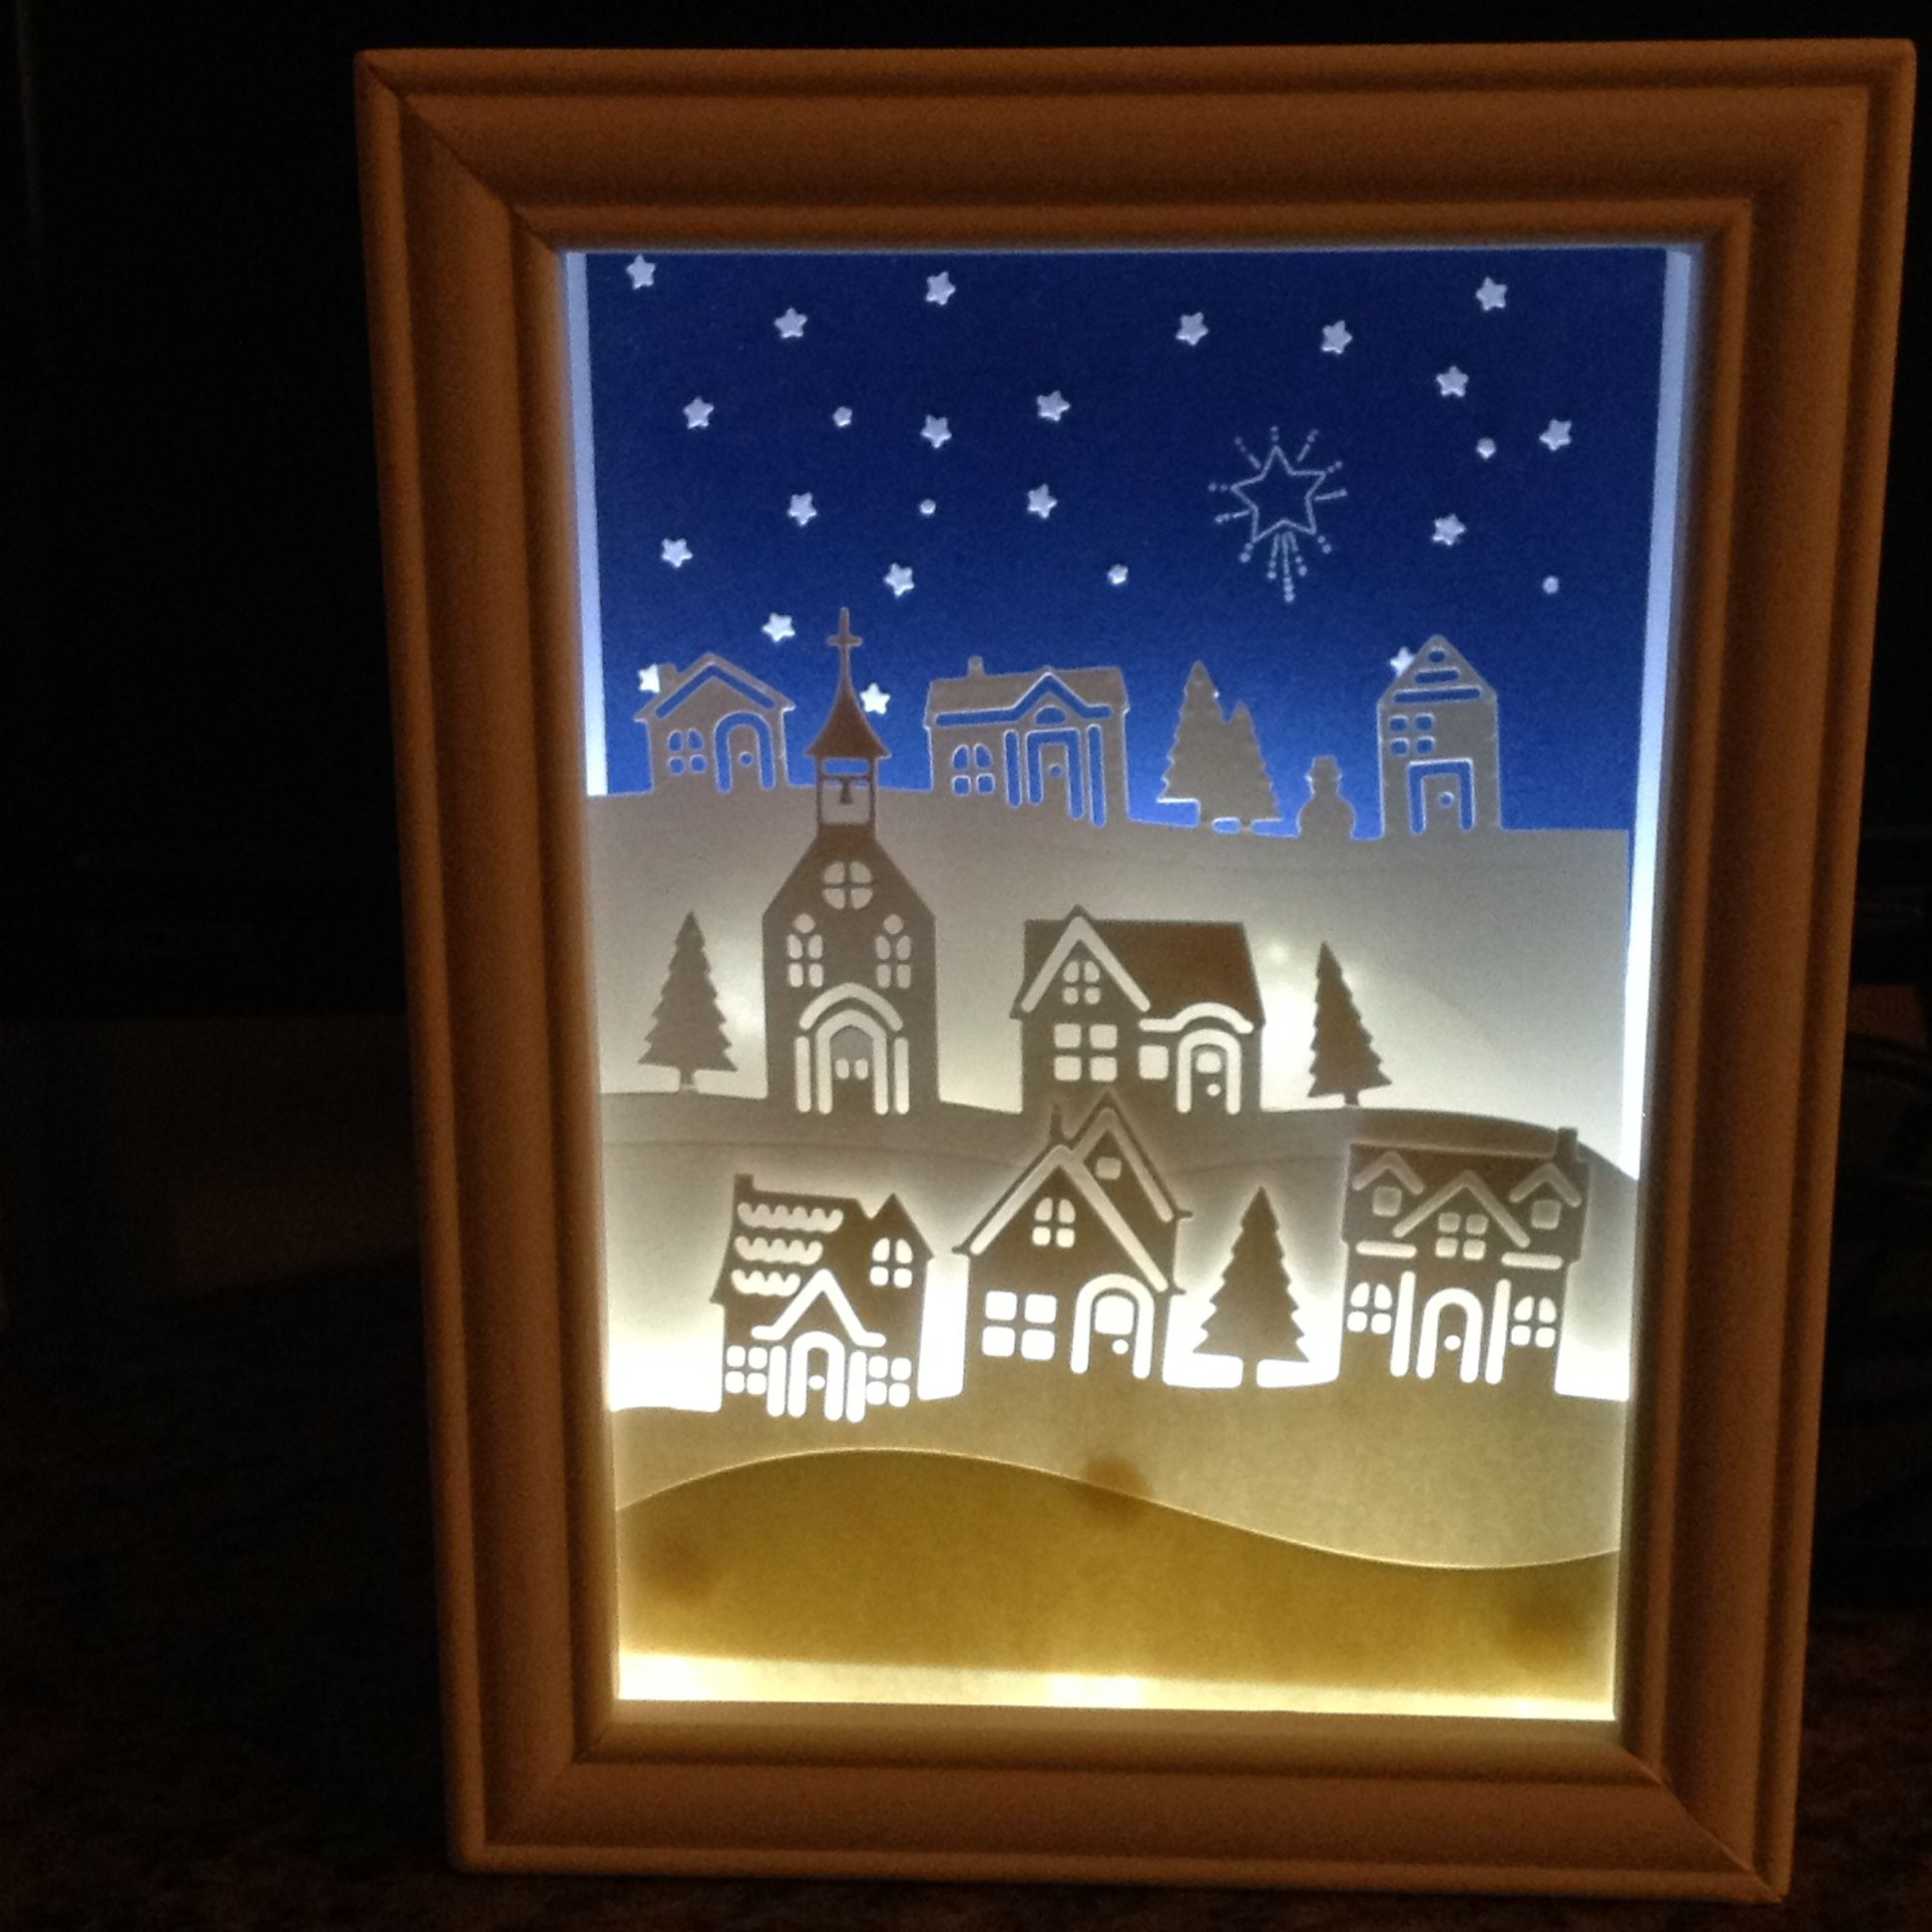 Stampin Up Hometown Greetings Edgelits Dies Lighted Shadow Box Stempelset